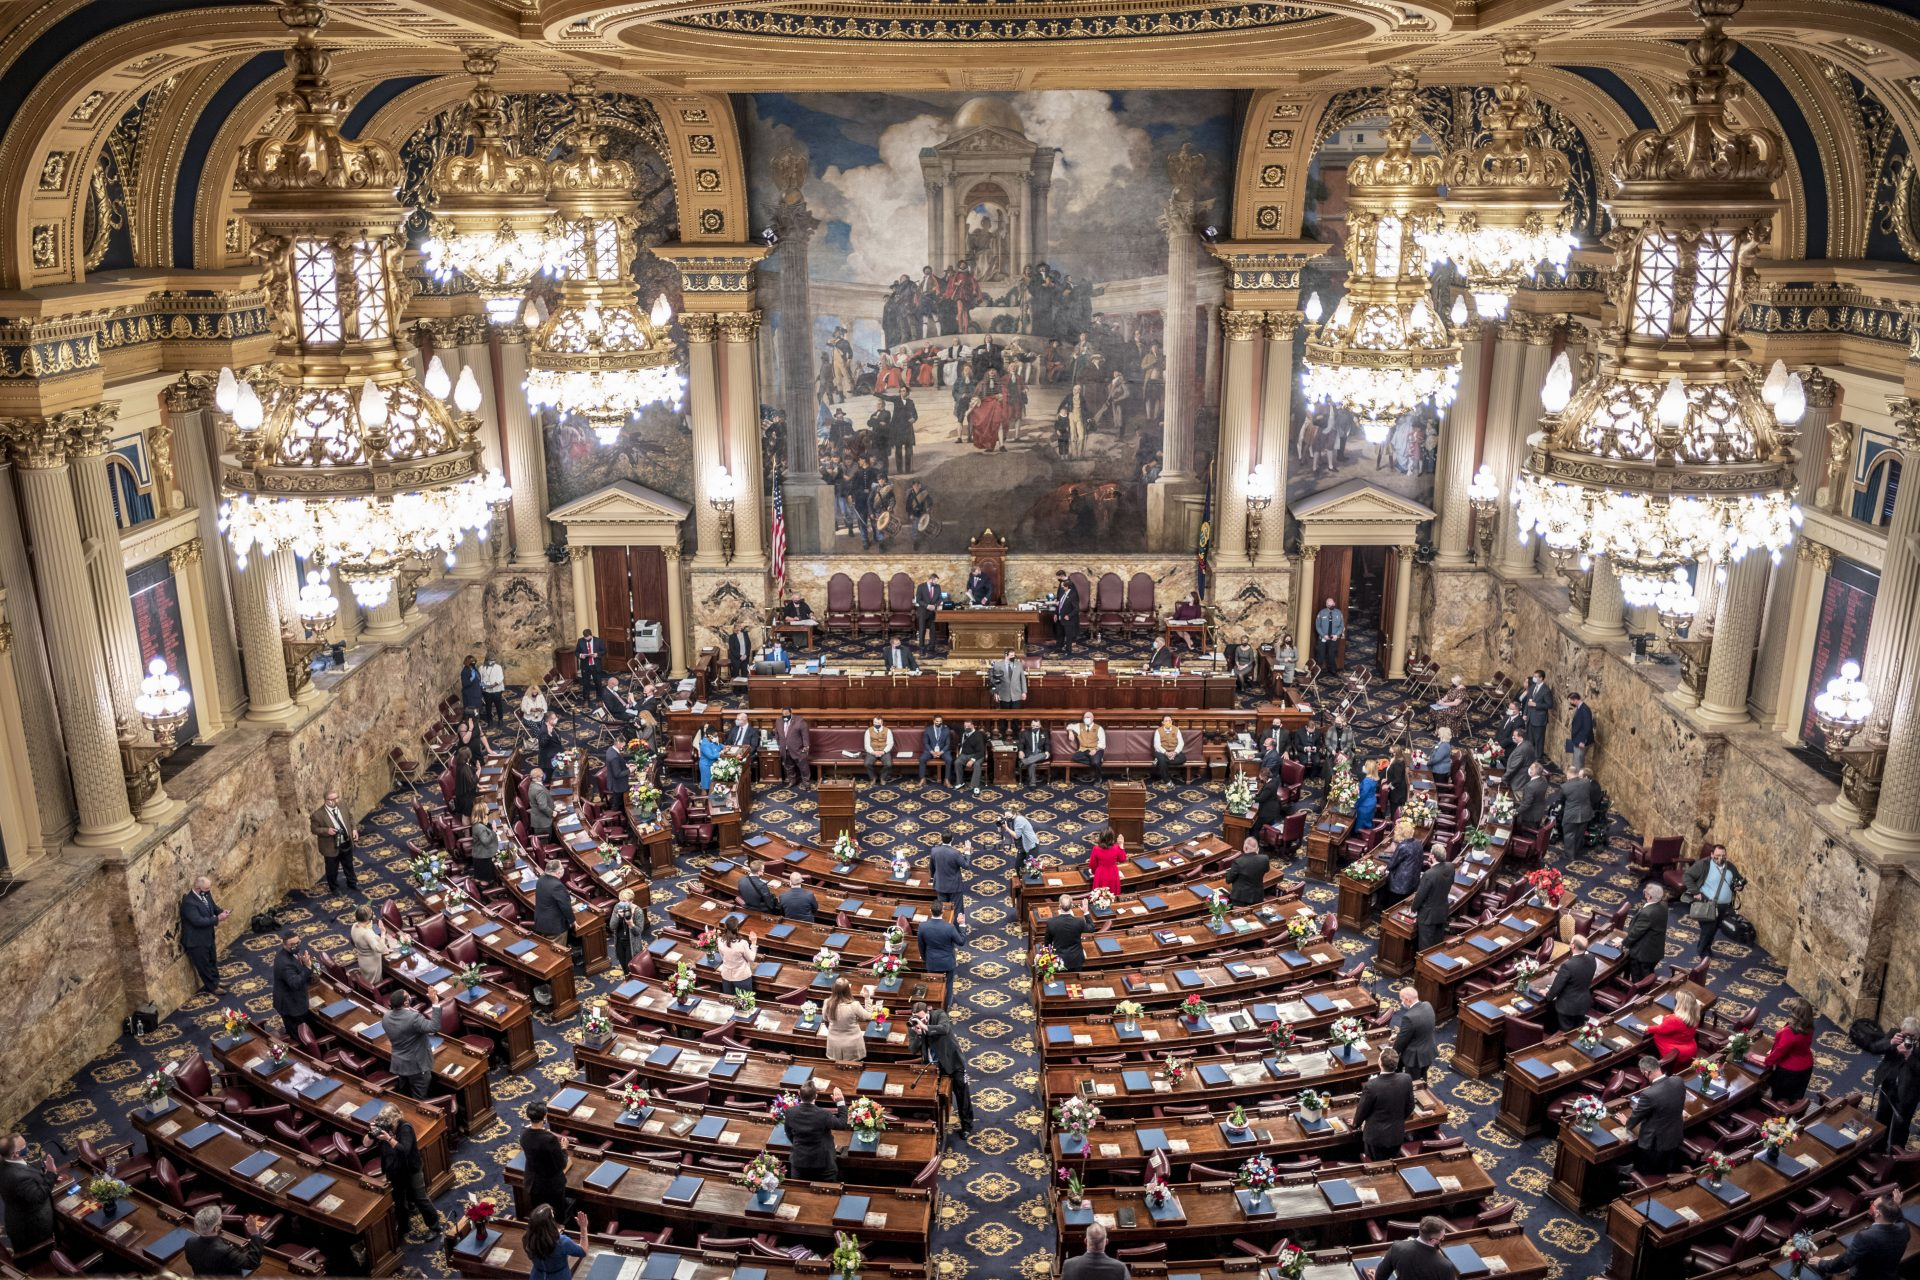 One fourth of the Pennsylvania House of Representatives is sworn-in, Tuesday, Jan. 5, 2021, at the state Capitol in Harrisburg, Pa. The ceremony was held in four separate sessions to provide for social distancing due to COVID-19. The ceremony marks the convening of the 2021-2022 legislative session of the General Assembly of Pennsylvania.